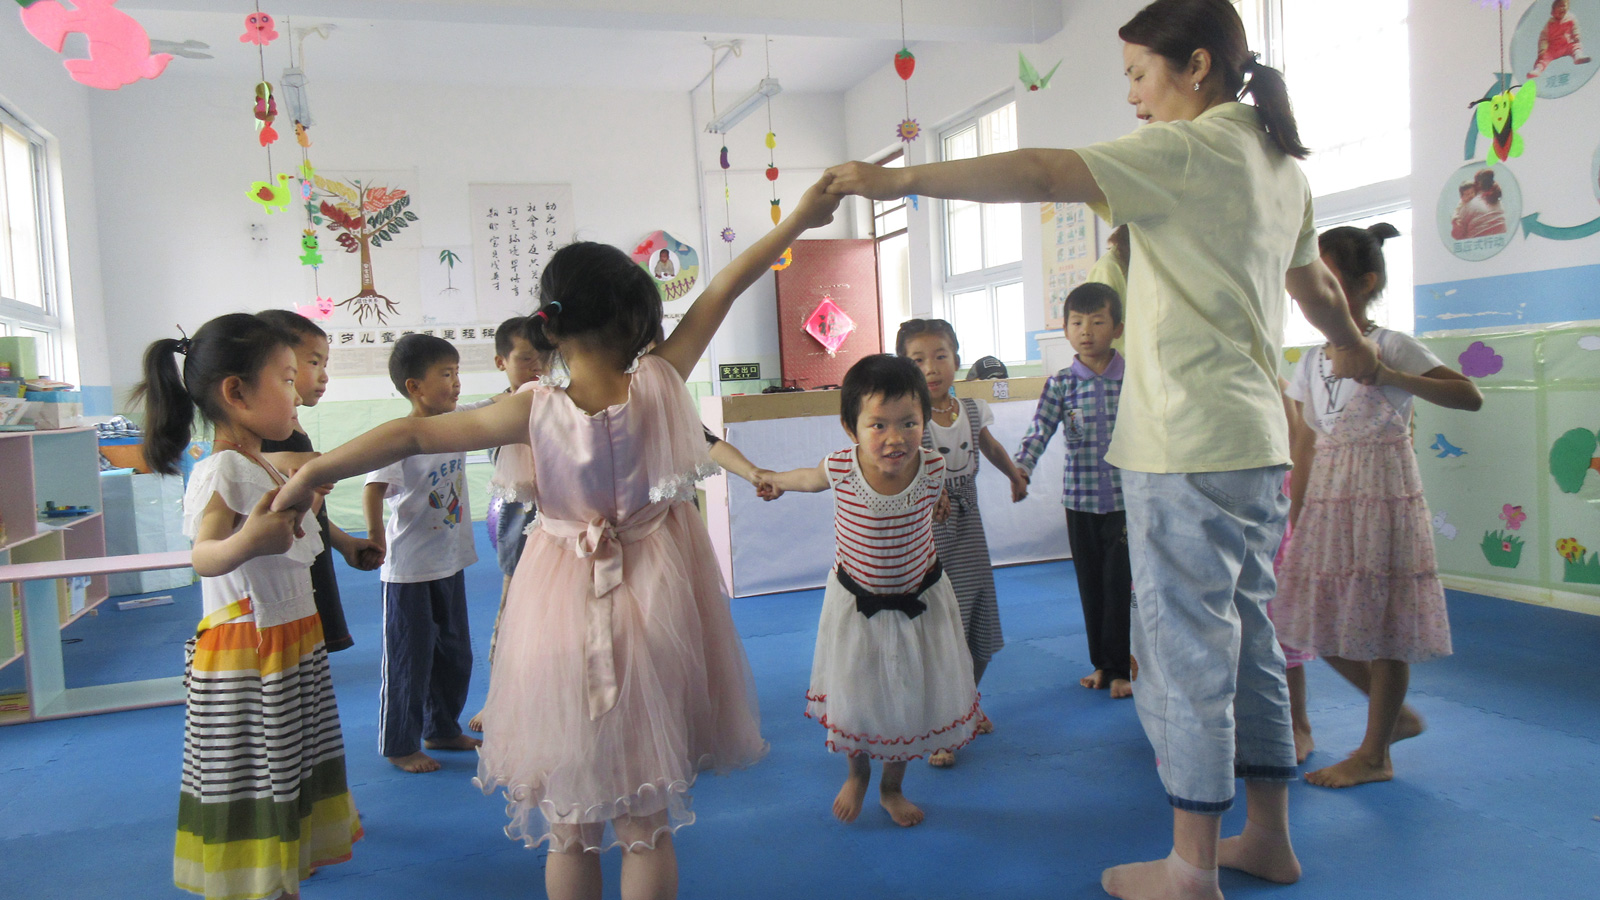 Zhenzhen leads the circle during class